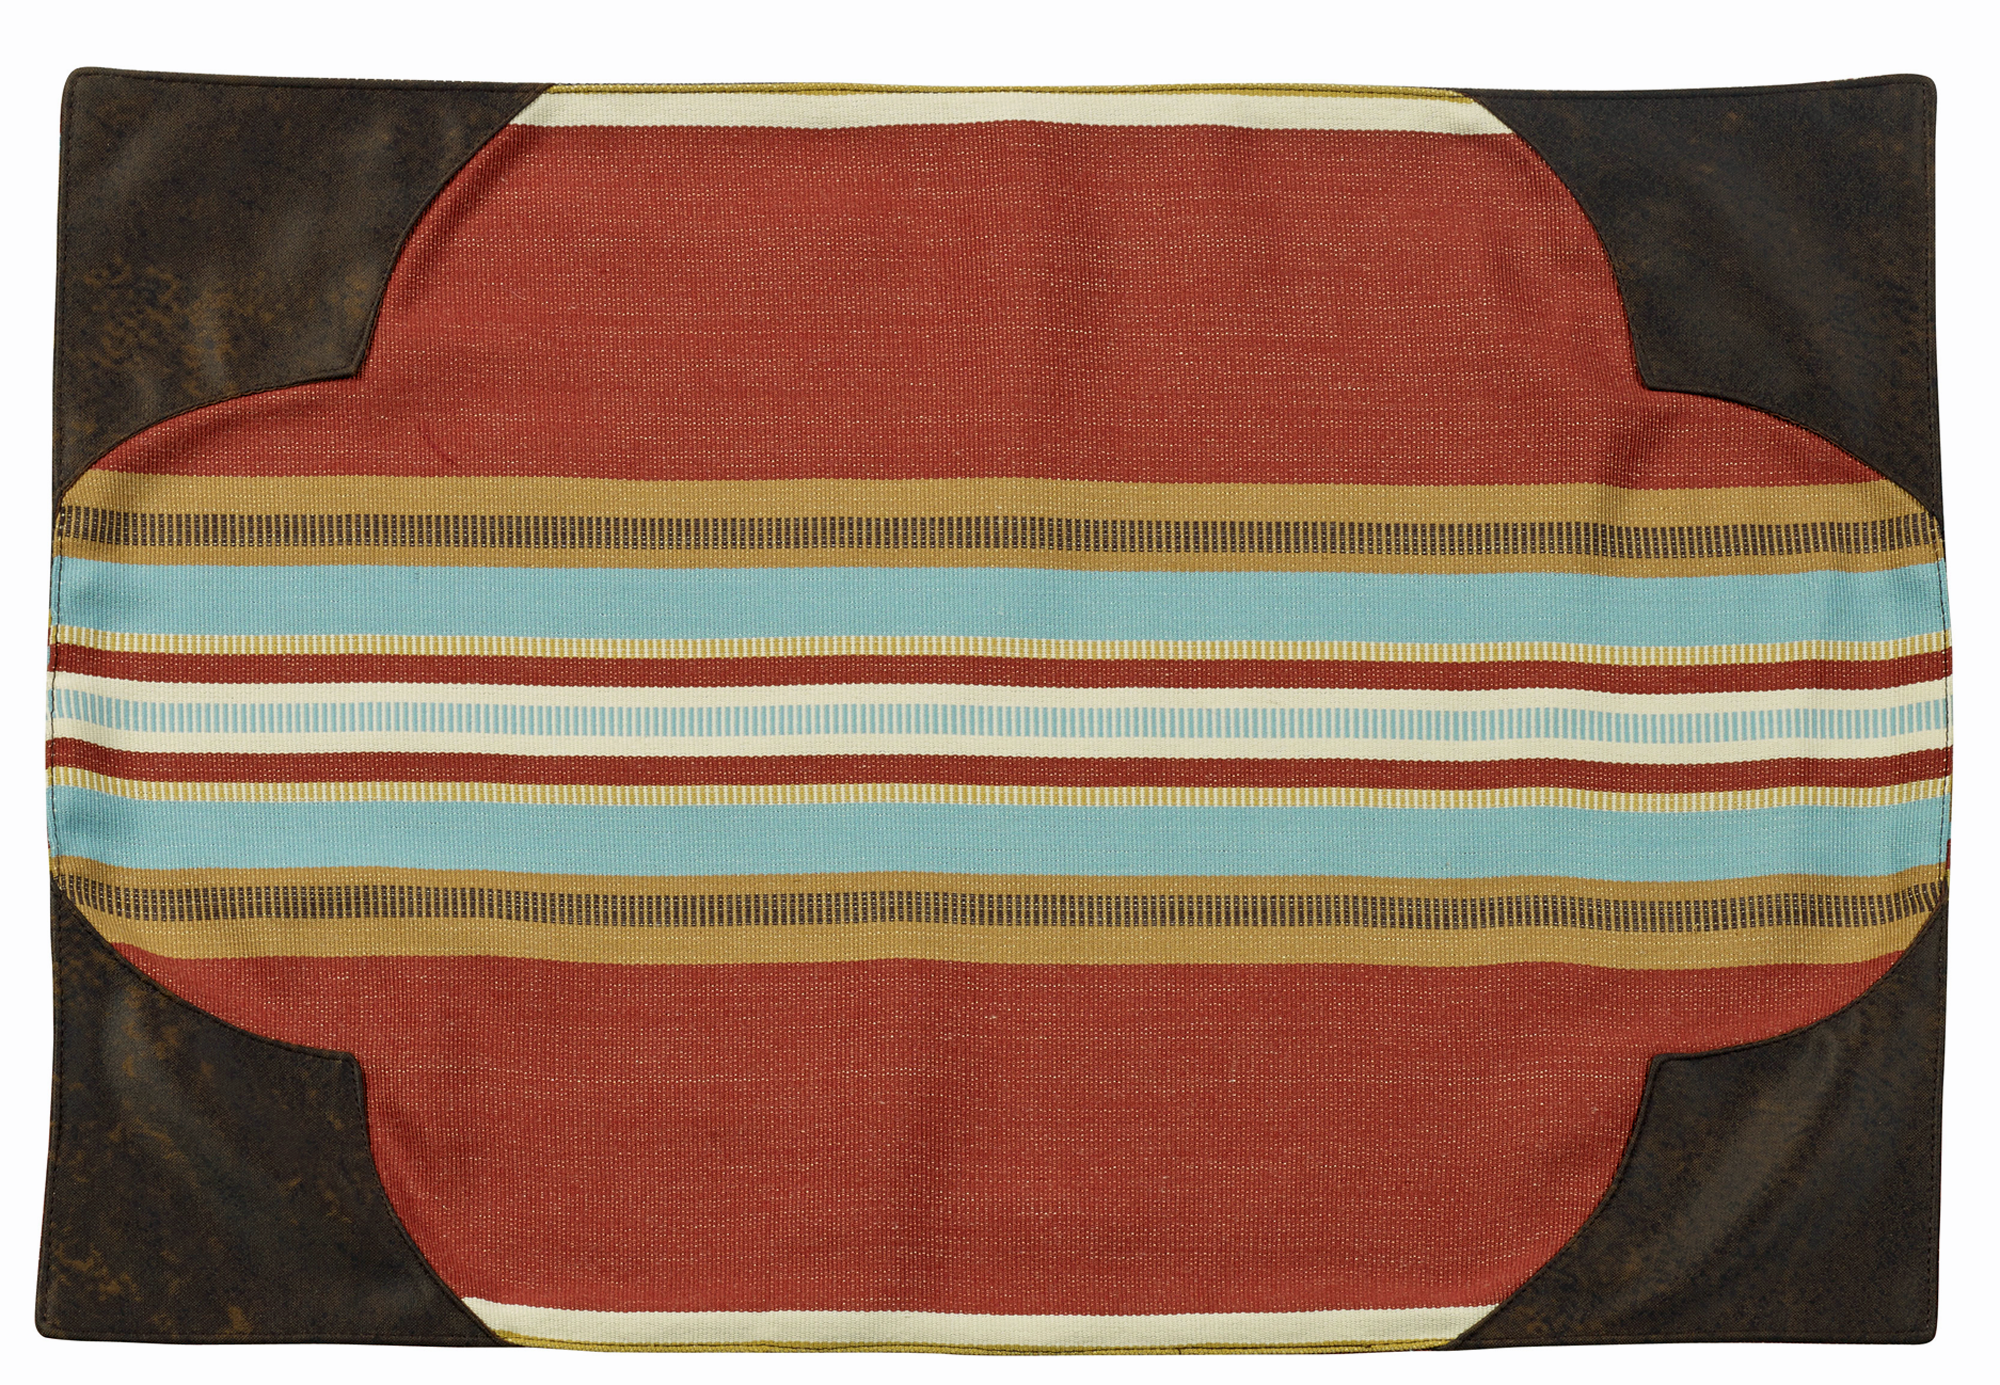 WS4060PM - Calhoun Placemats (Set of 4)- Western Bedding by HiEnd Accents